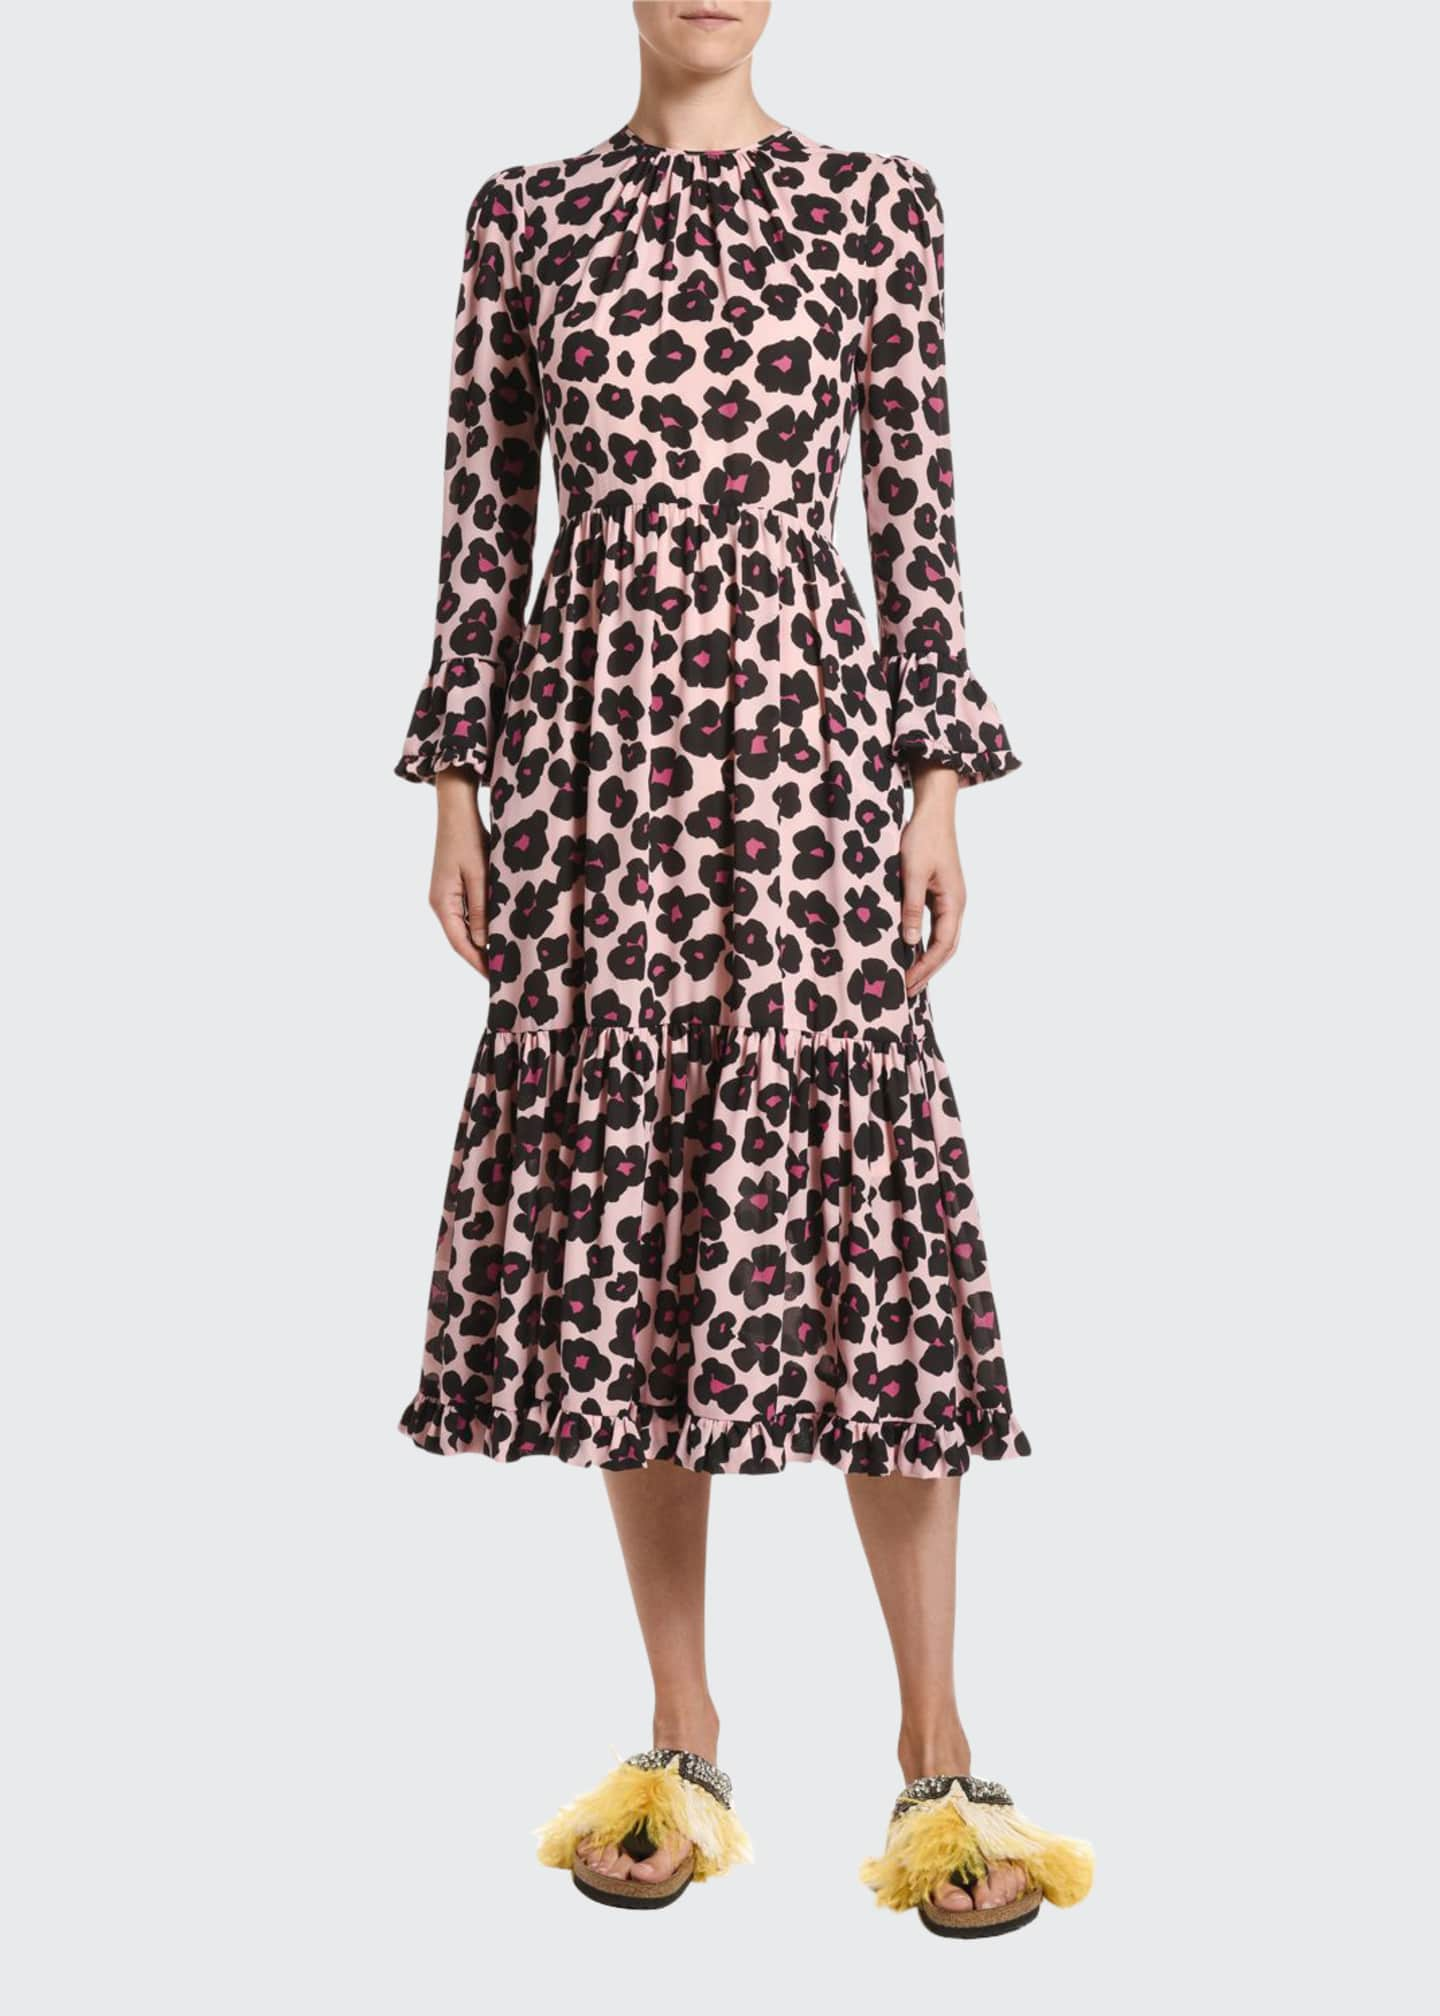 Double J Visconti Animal-Print Crepe Midi Dress